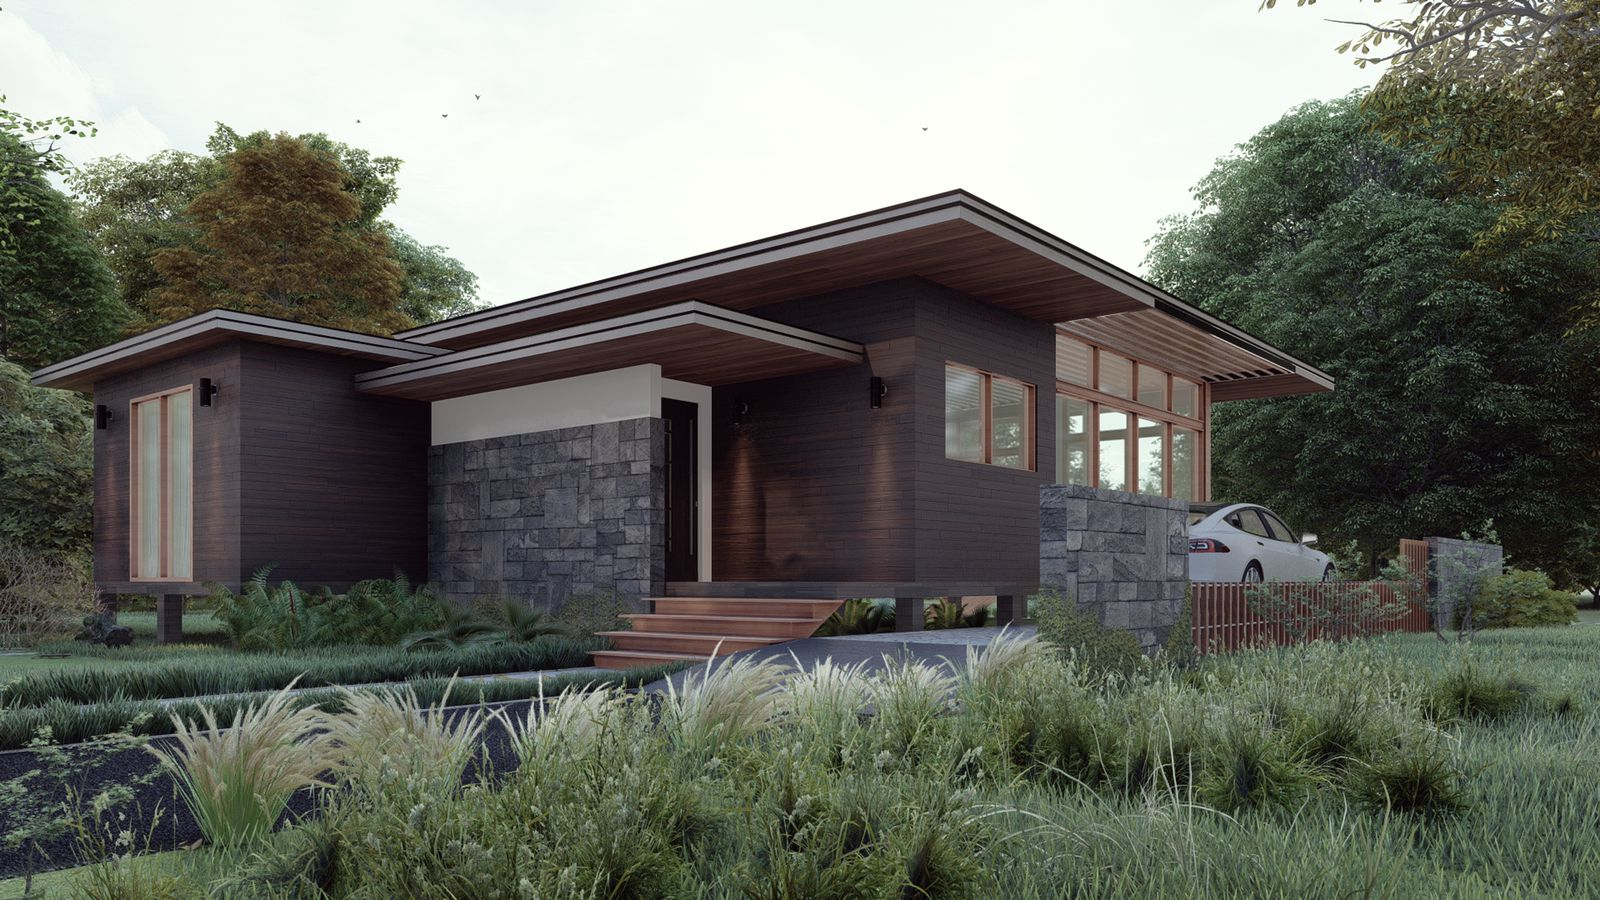 Two bedroom house in sustainable development